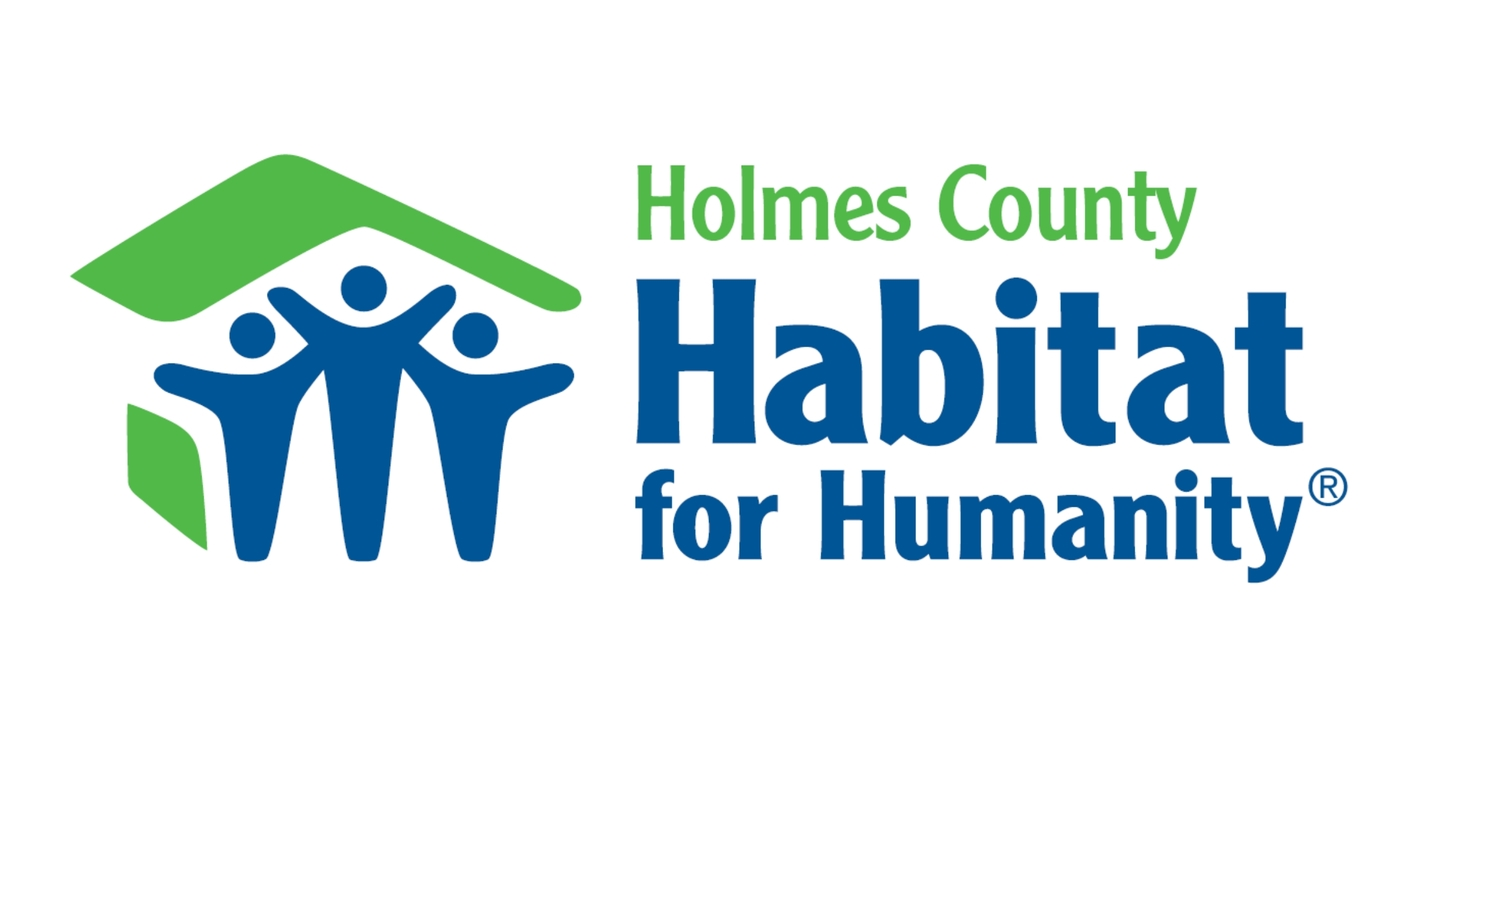 Holmes County Habitat for Humanity